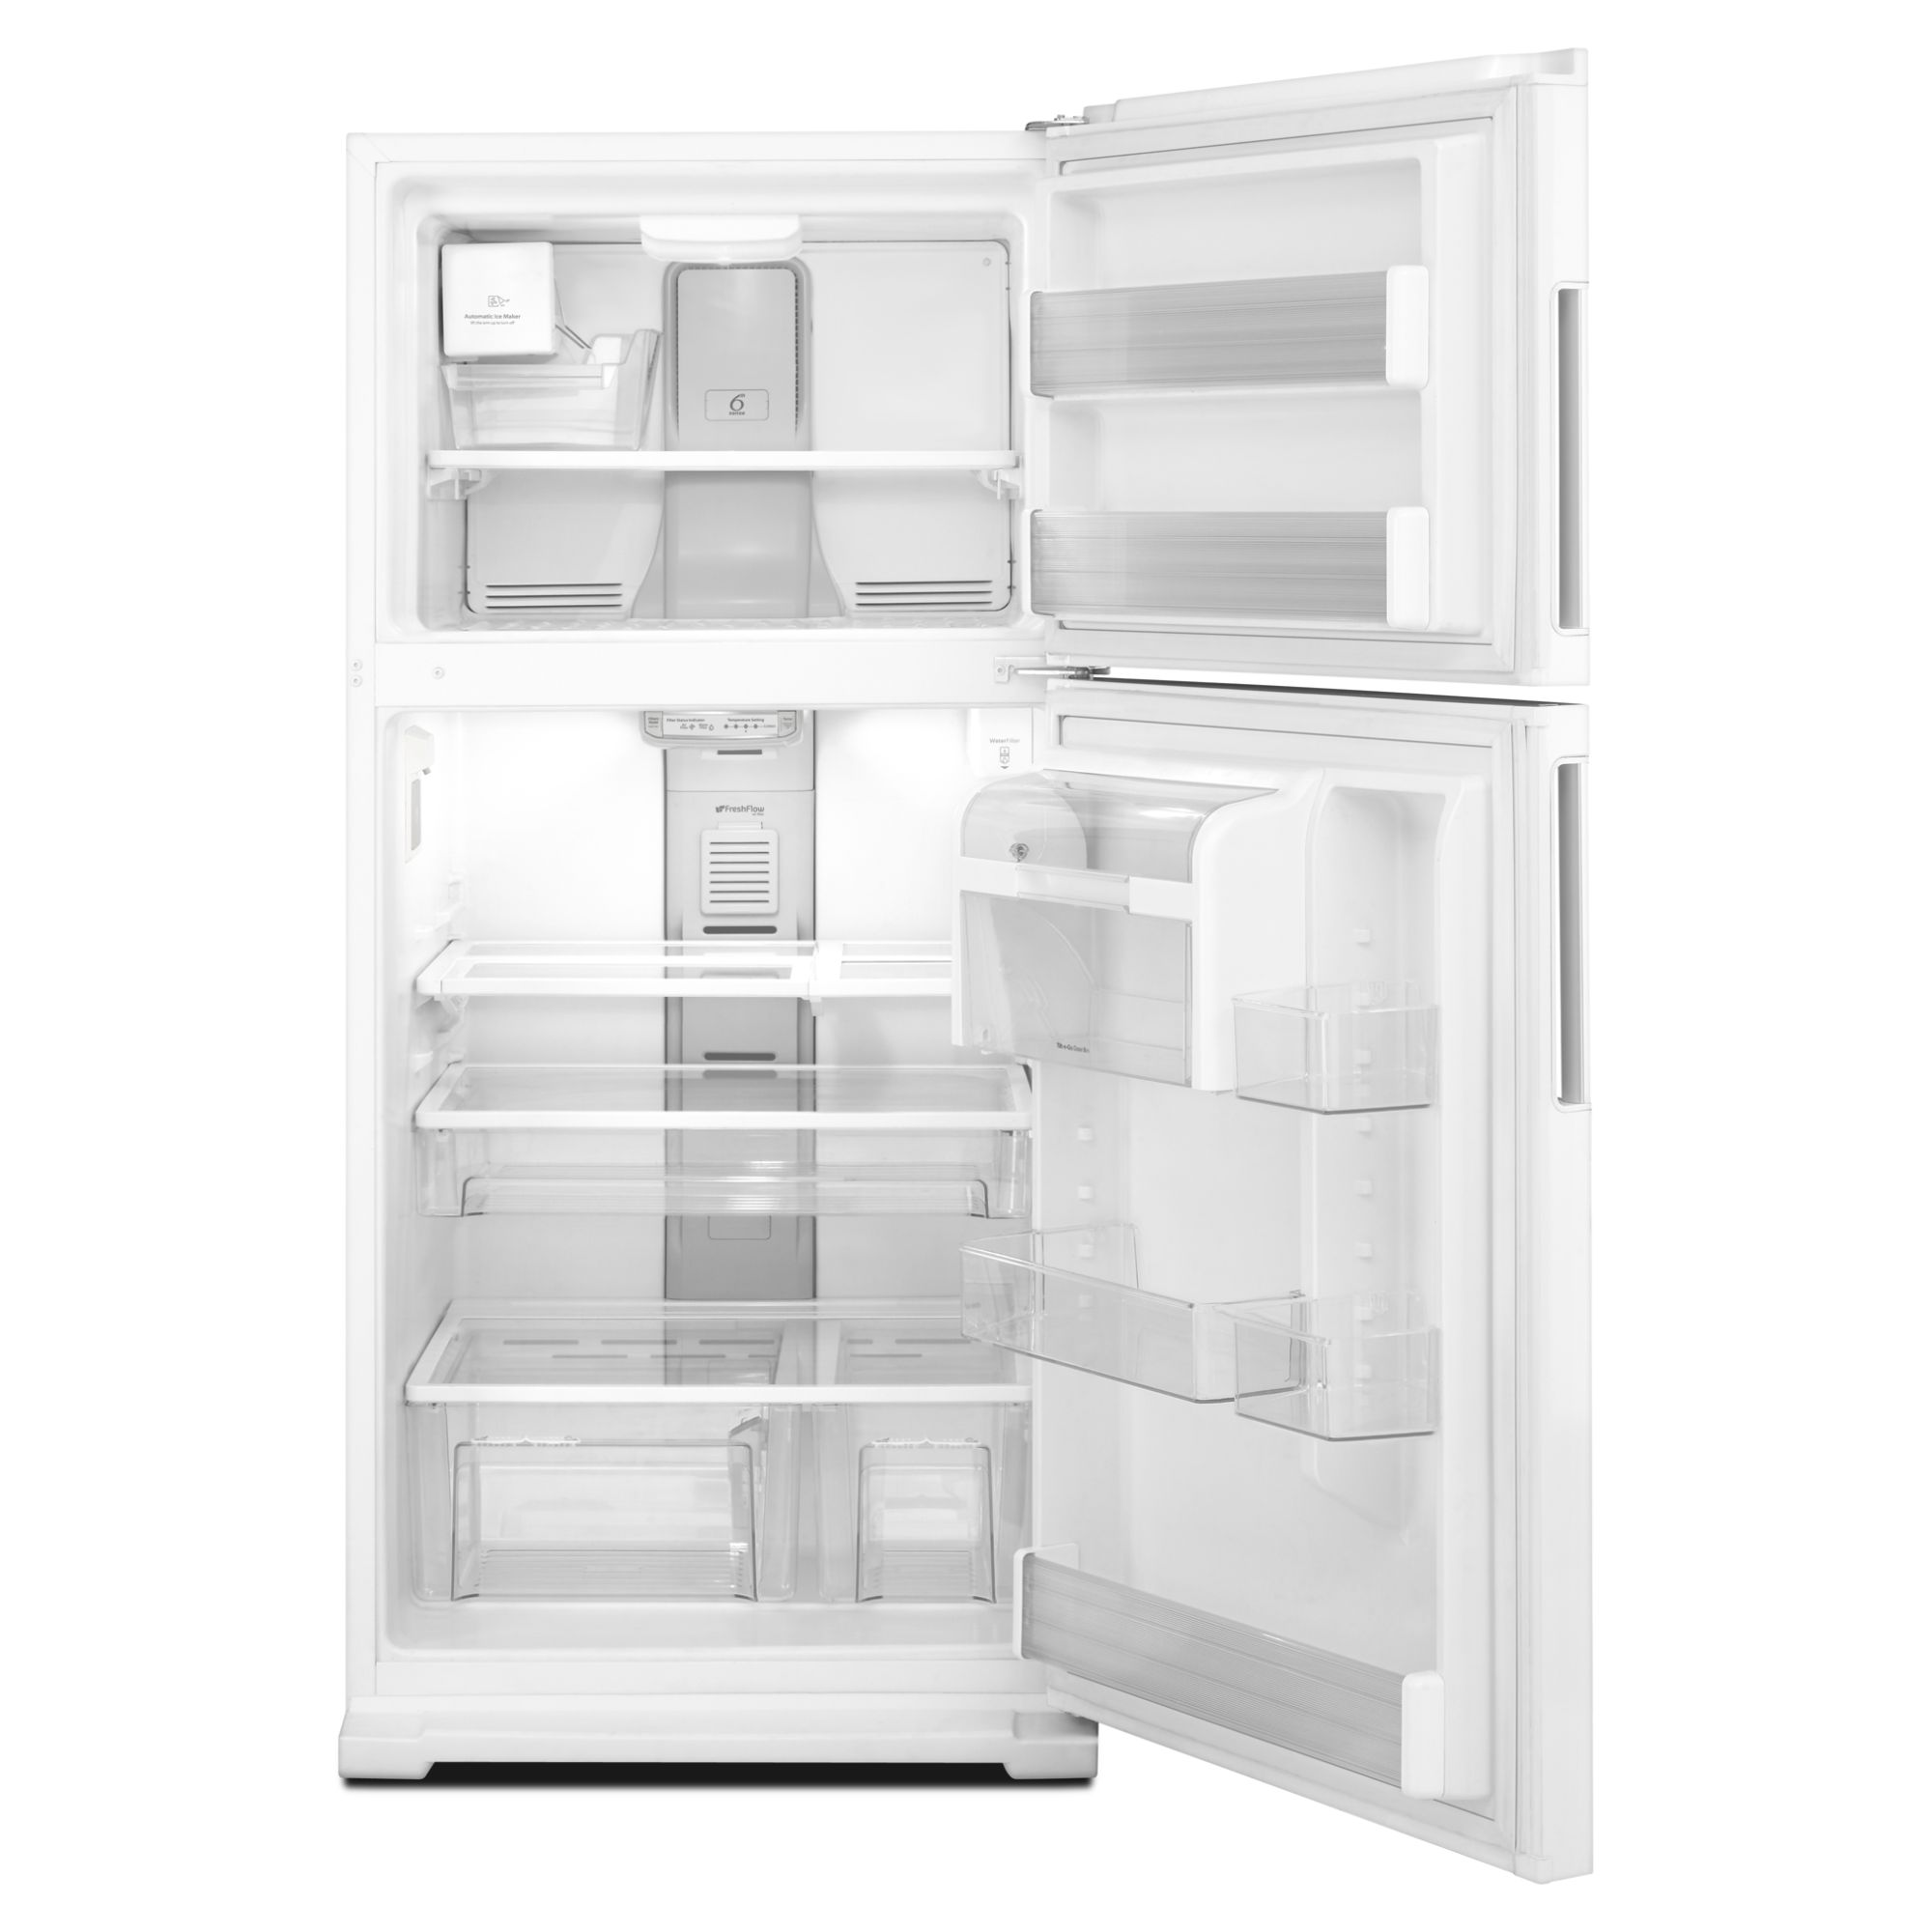 Whirlpool 19.0 cu. ft. Top-Freezer Refrigerator w/ Interior Water Dispenser - White